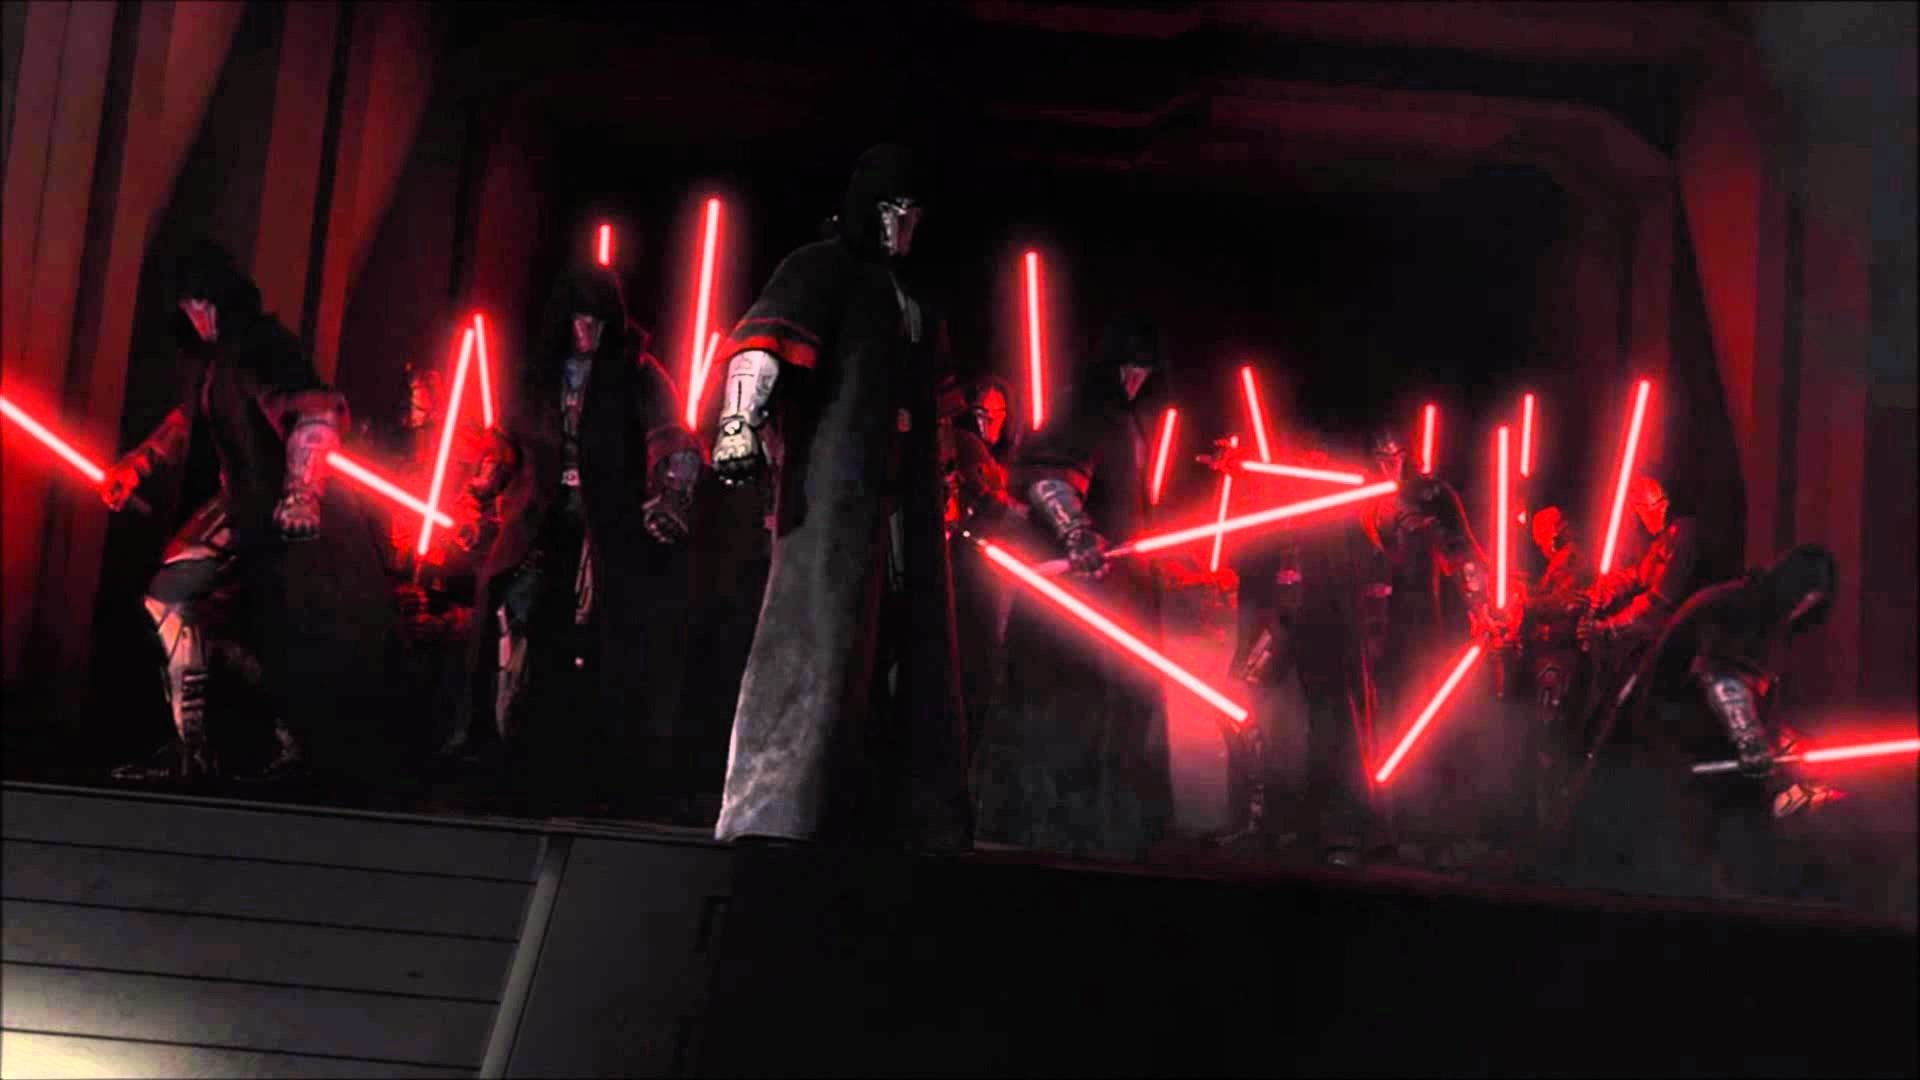 Sith Wallpaper Hd Posted By Samantha Peltier